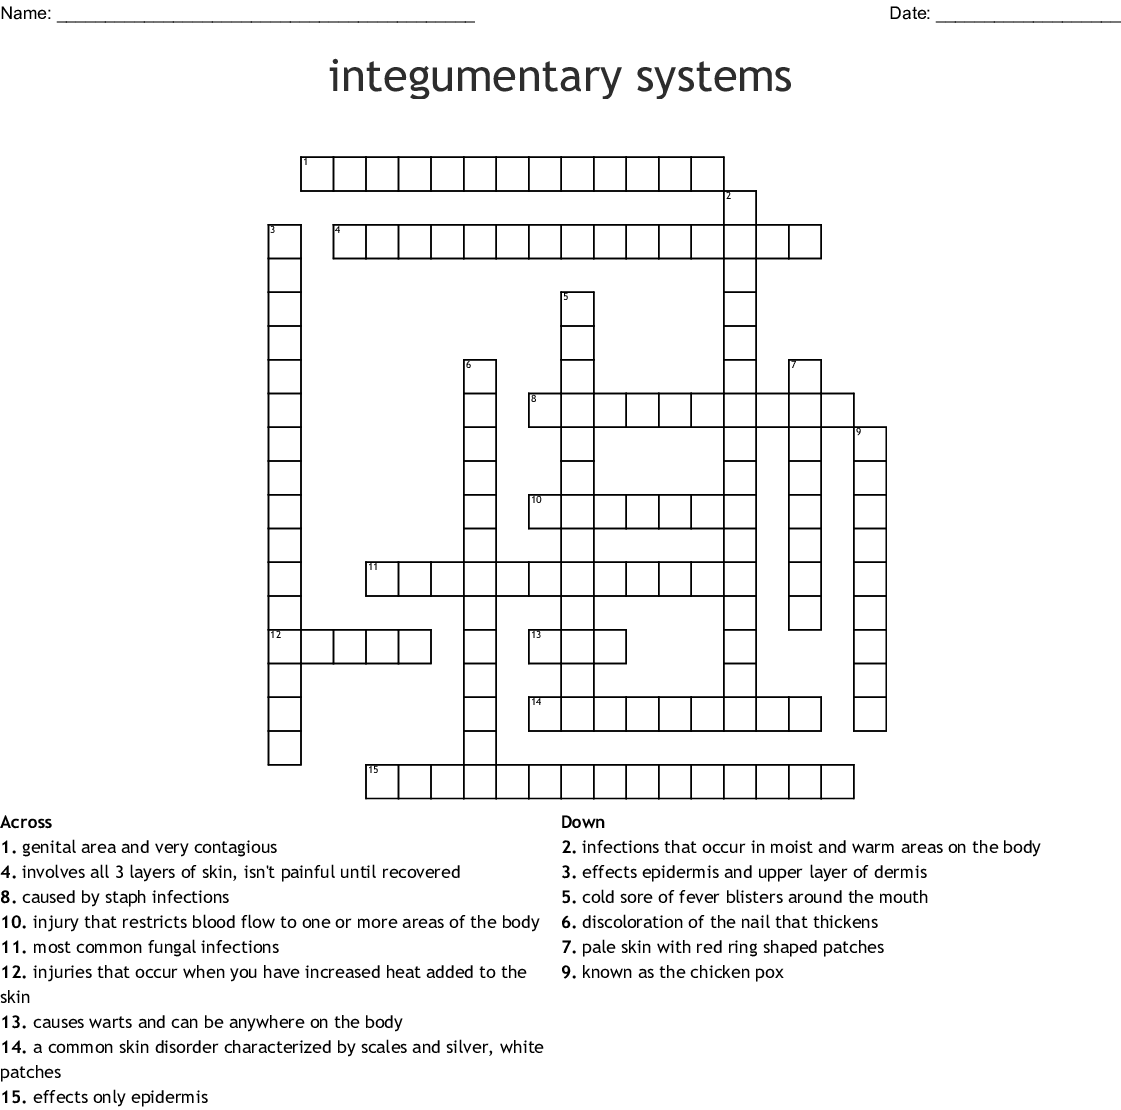 Fungal Infections Crossword